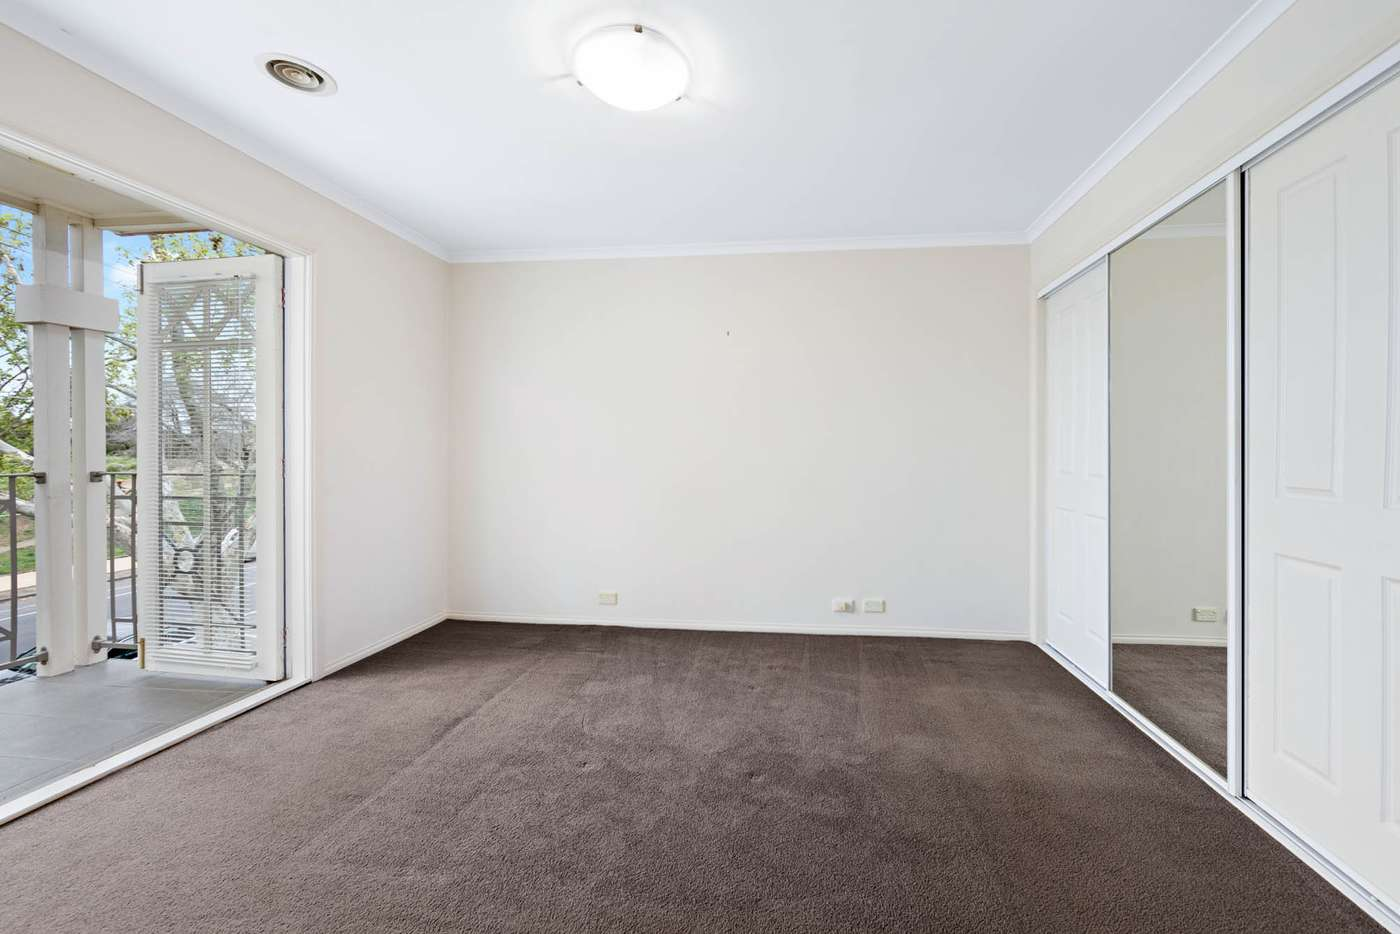 Sixth view of Homely townhouse listing, 1/483 St Kilda Street, Elwood VIC 3184